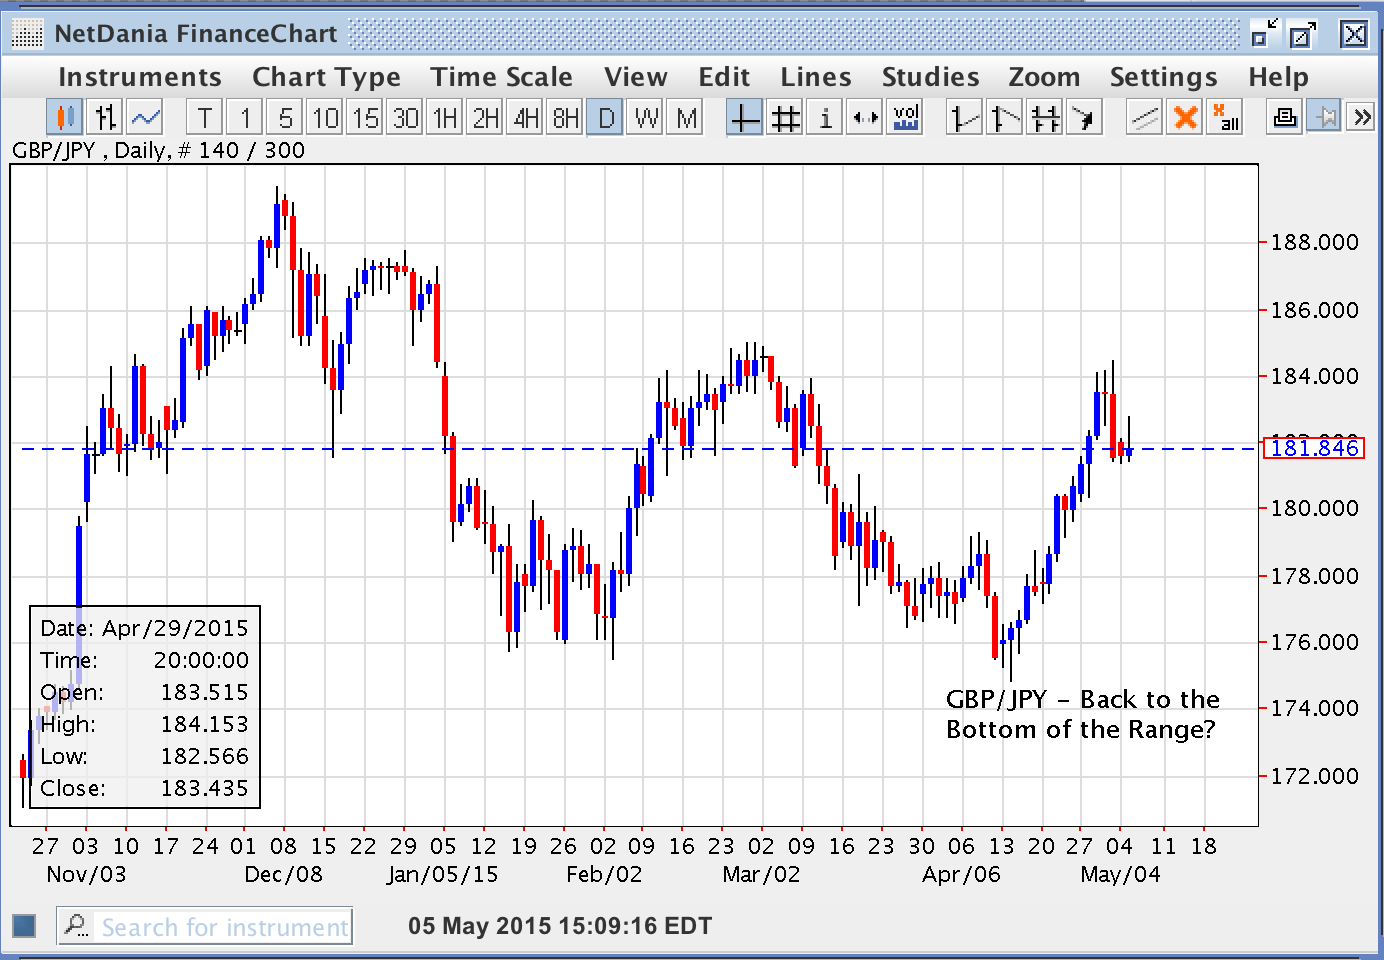 GBP/JPY Back to the Bottom of the Range?